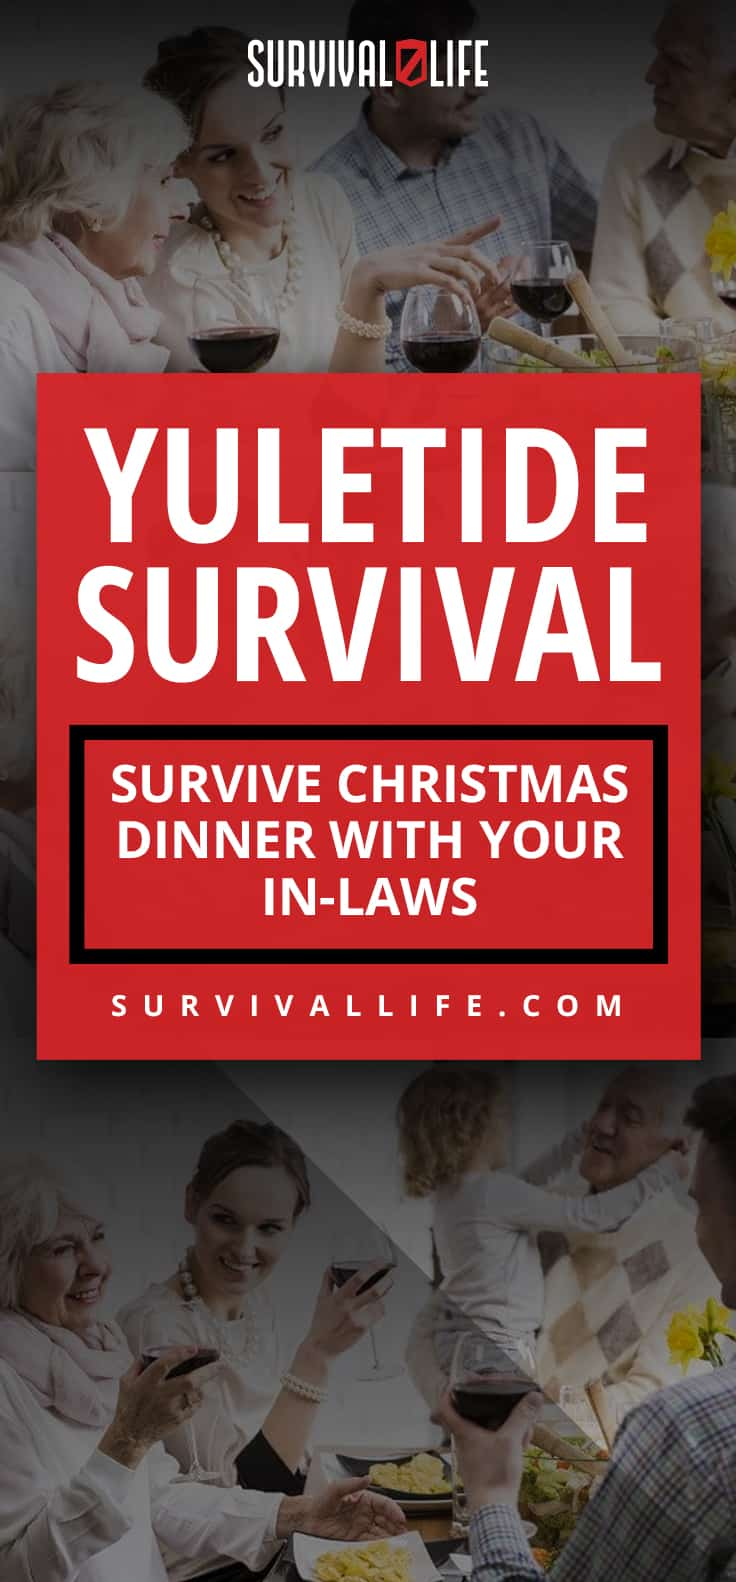 Check out Yuletide Survival | Survive Christmas Dinner With Your In-Laws at https://survivallife.com/survive-christmas-dinner-with-in-laws/